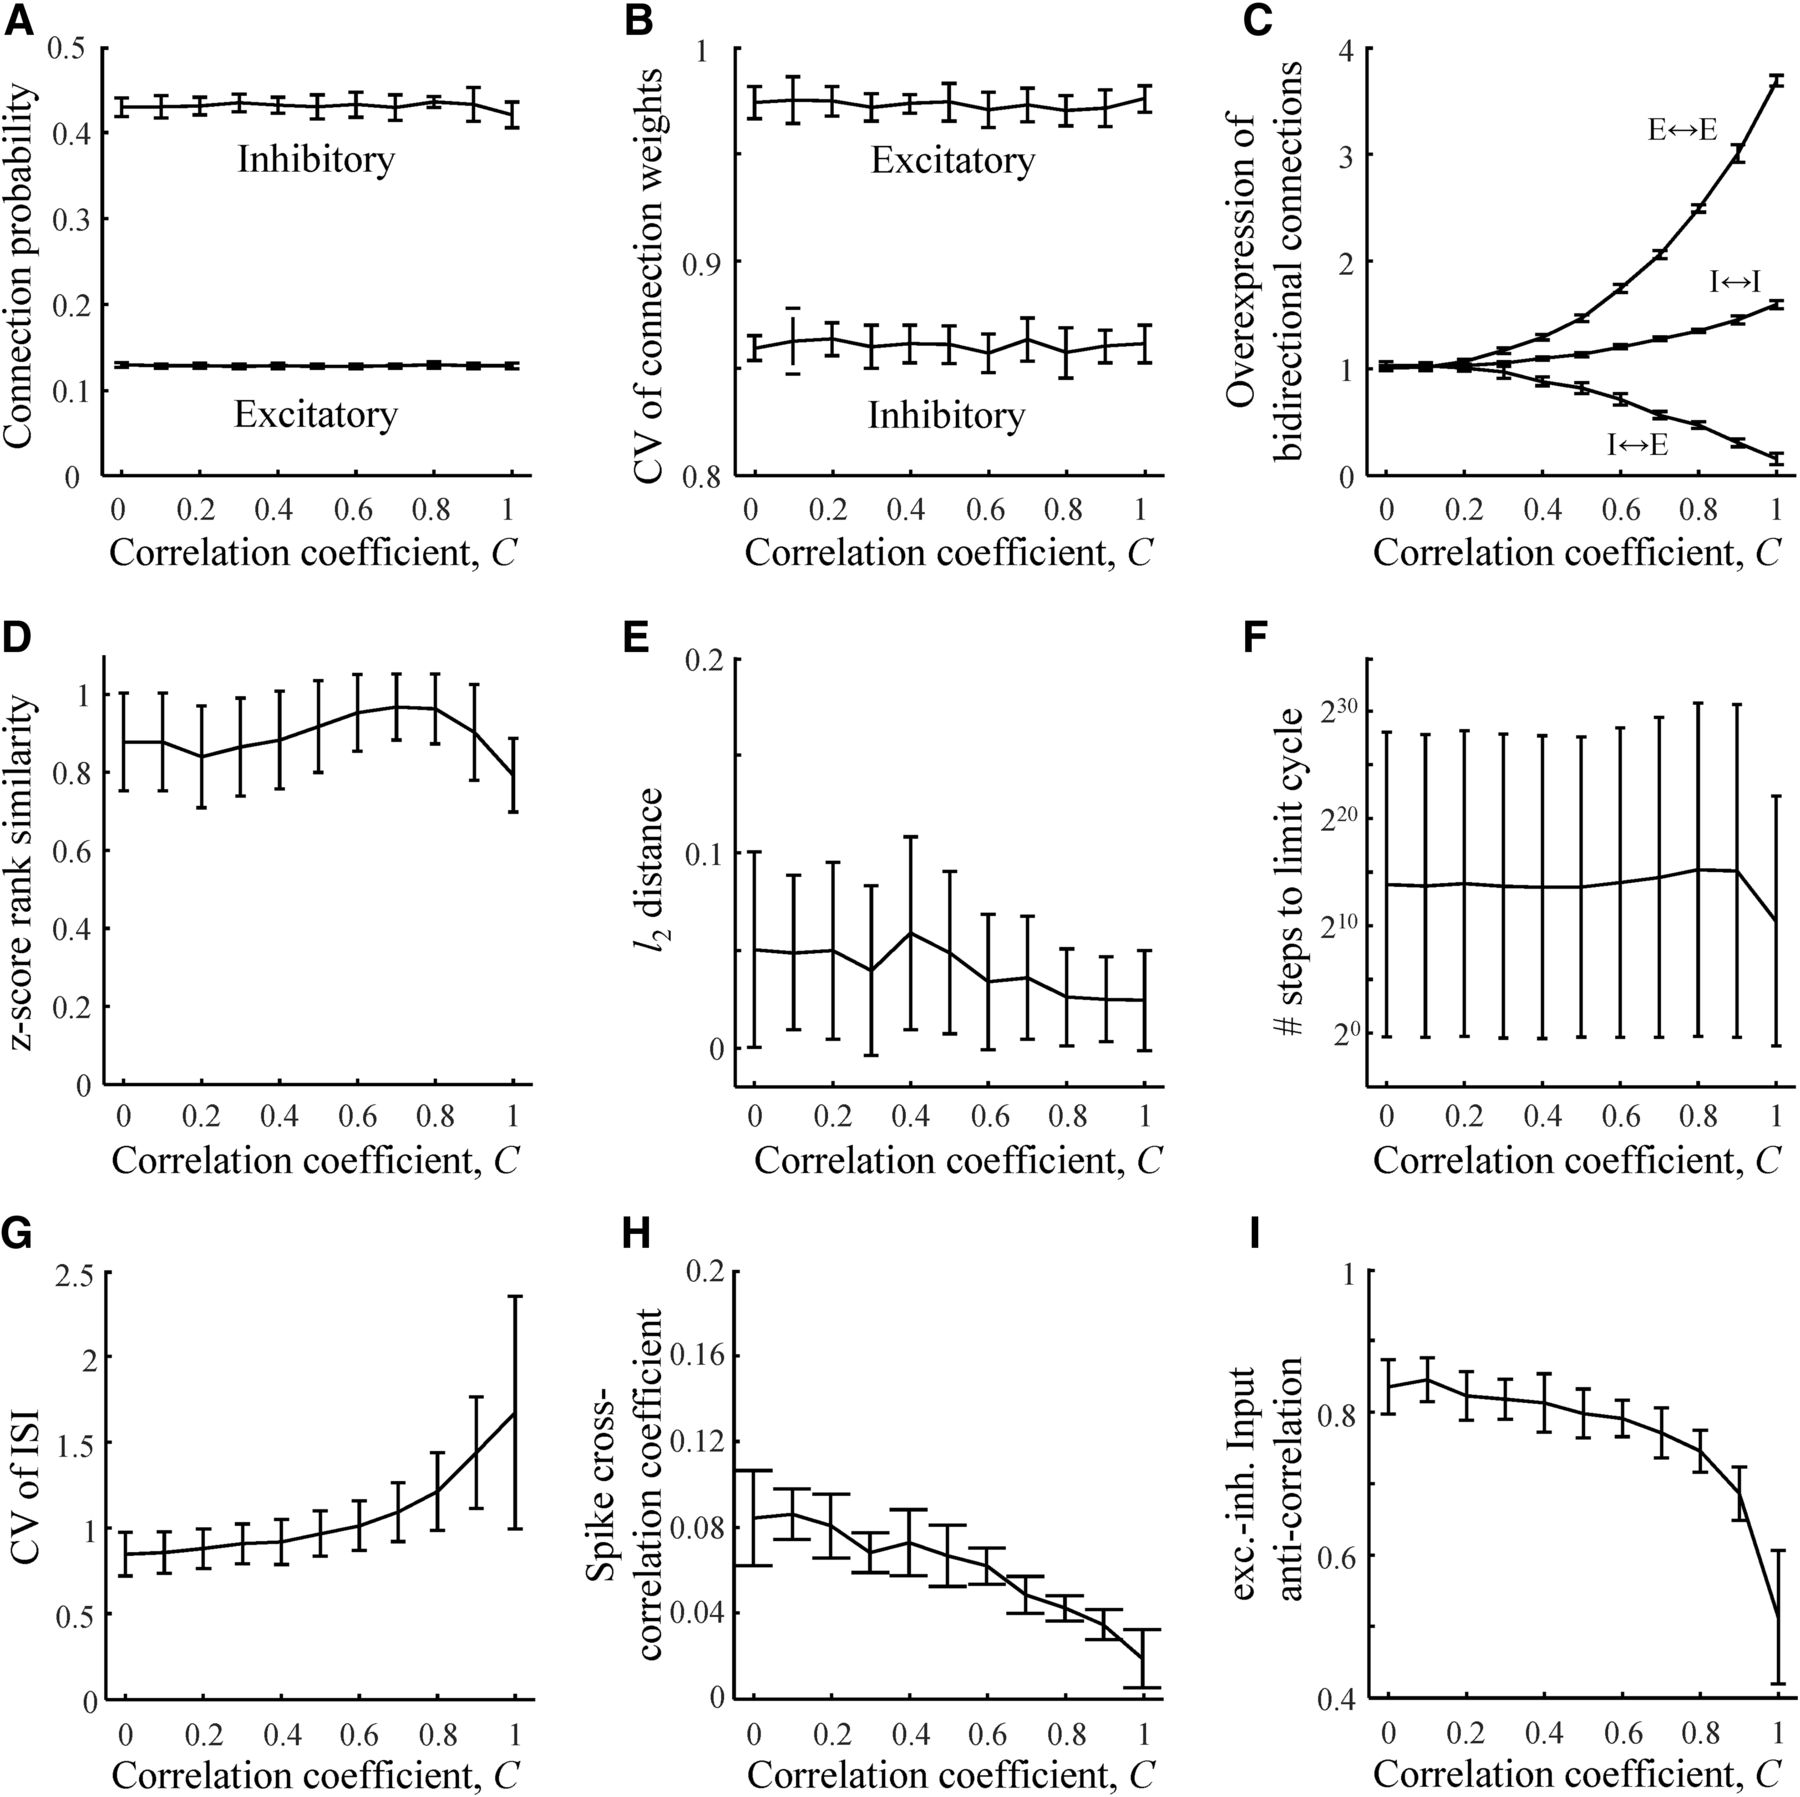 Robust Associative Learning Is Sufficient to Explain the